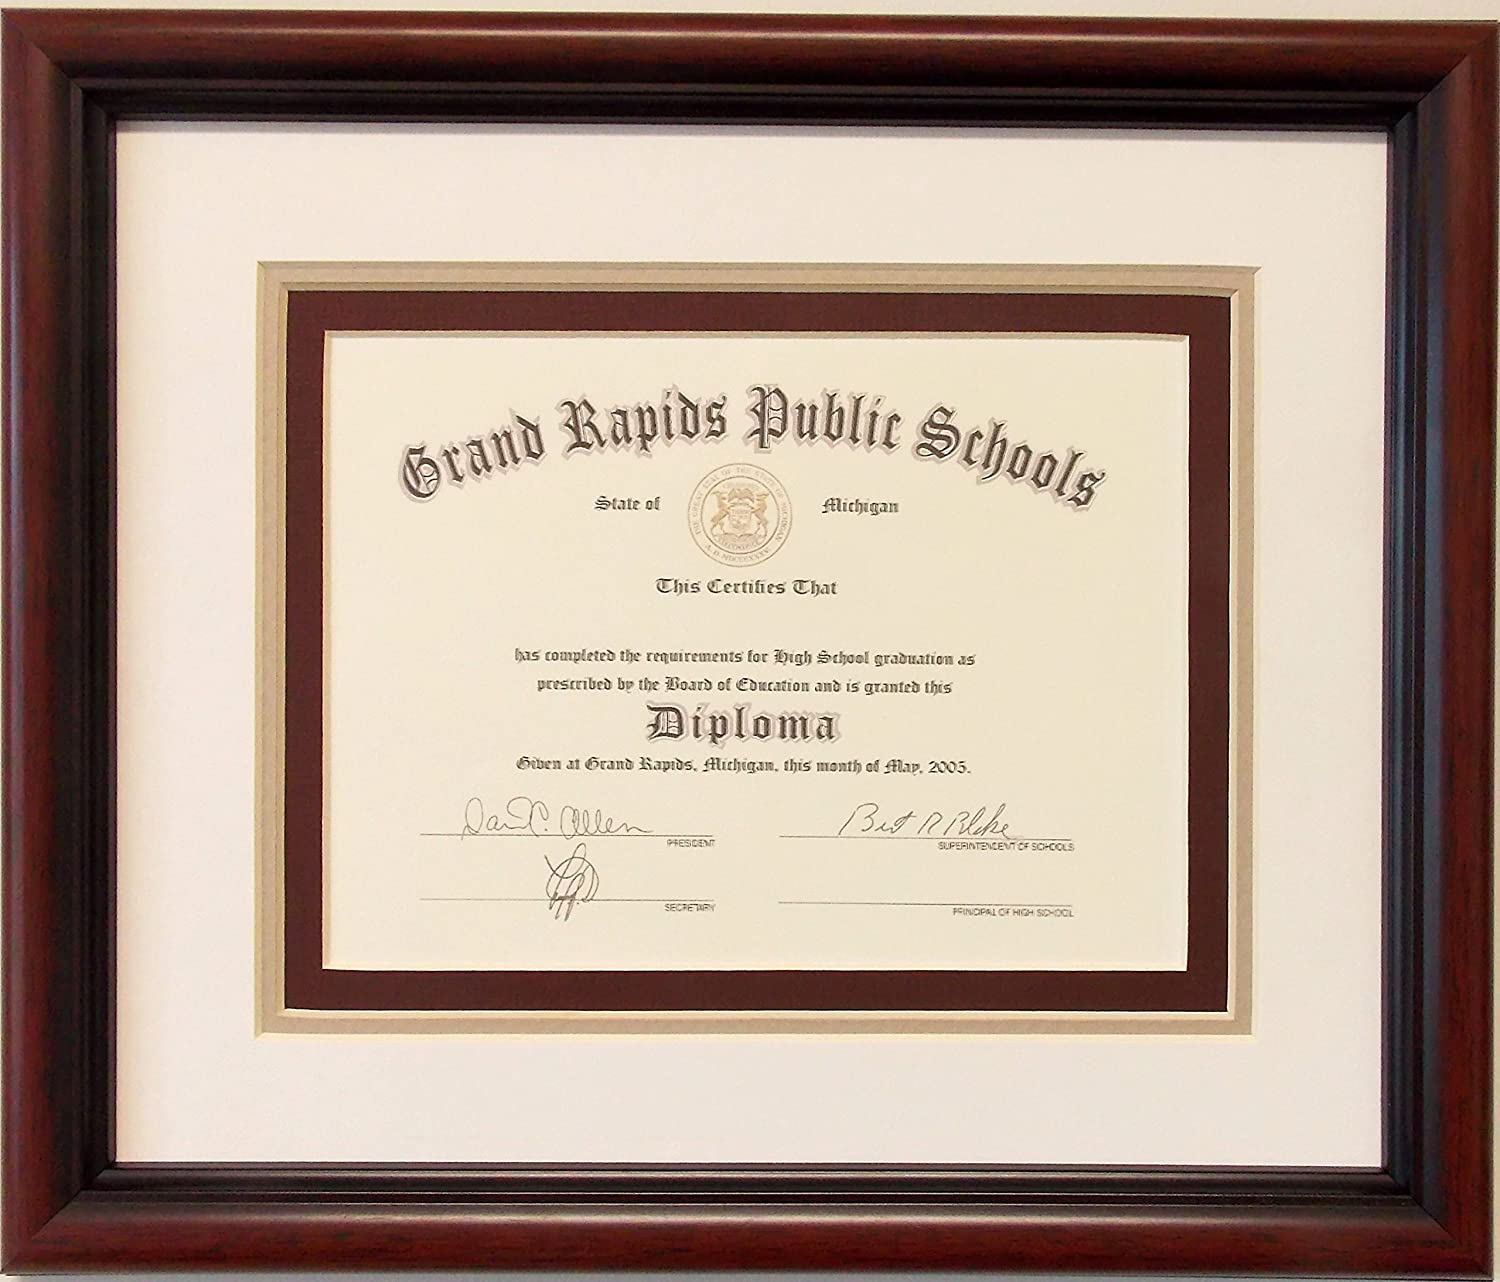 Graduation High safety School Max 73% OFF Diploma 8 X 6 Certificate